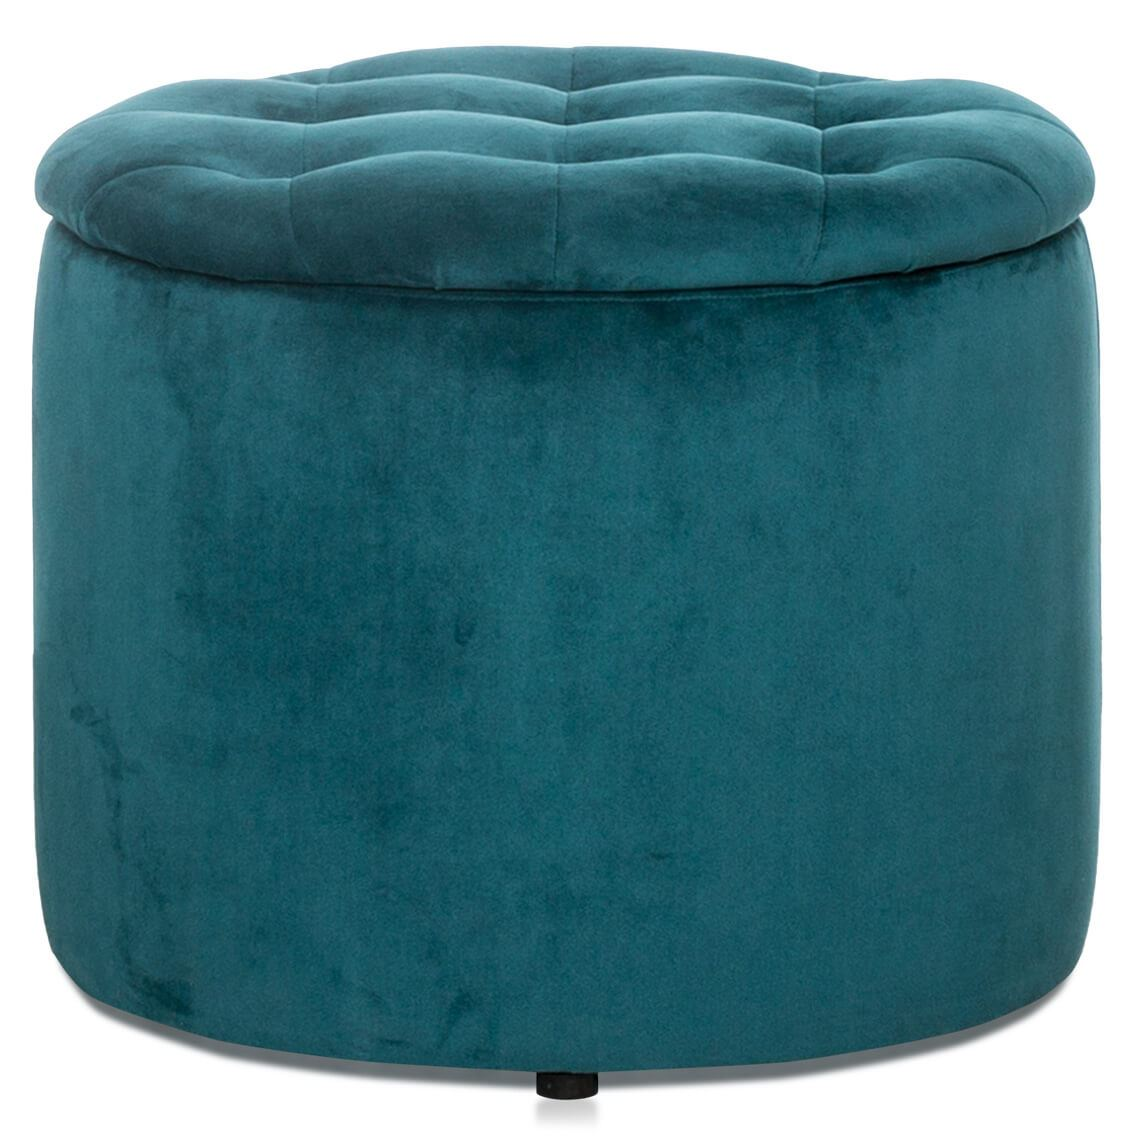 Super Flemming Velvet Storage Ottoman Turquoise Products In Ocoug Best Dining Table And Chair Ideas Images Ocougorg